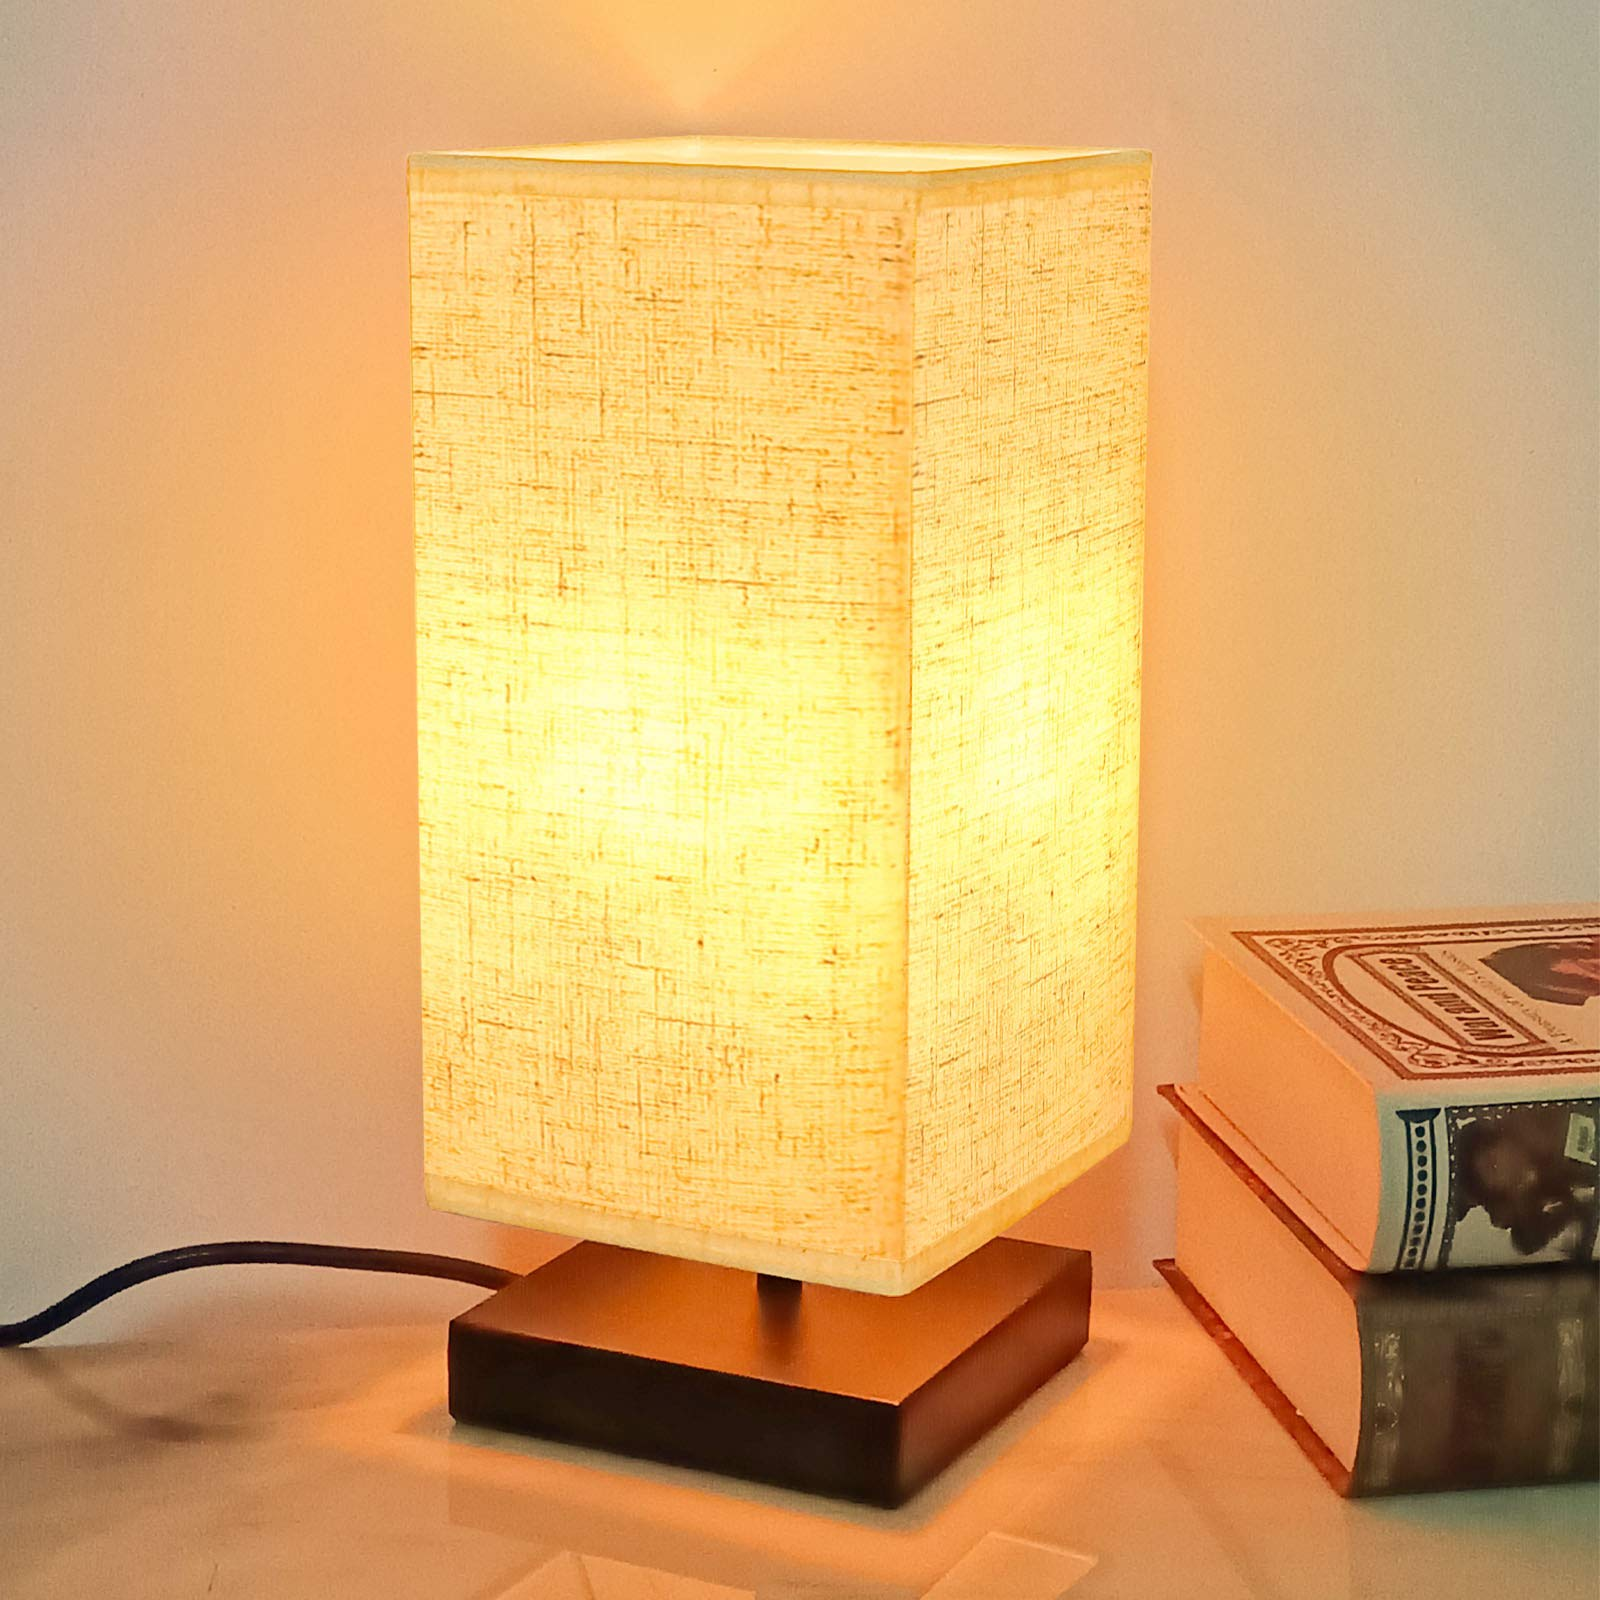 Bedside Table Lamp Modern Simple Desk Lamp Dimmer Switch Nightstand Lamps Minimalist